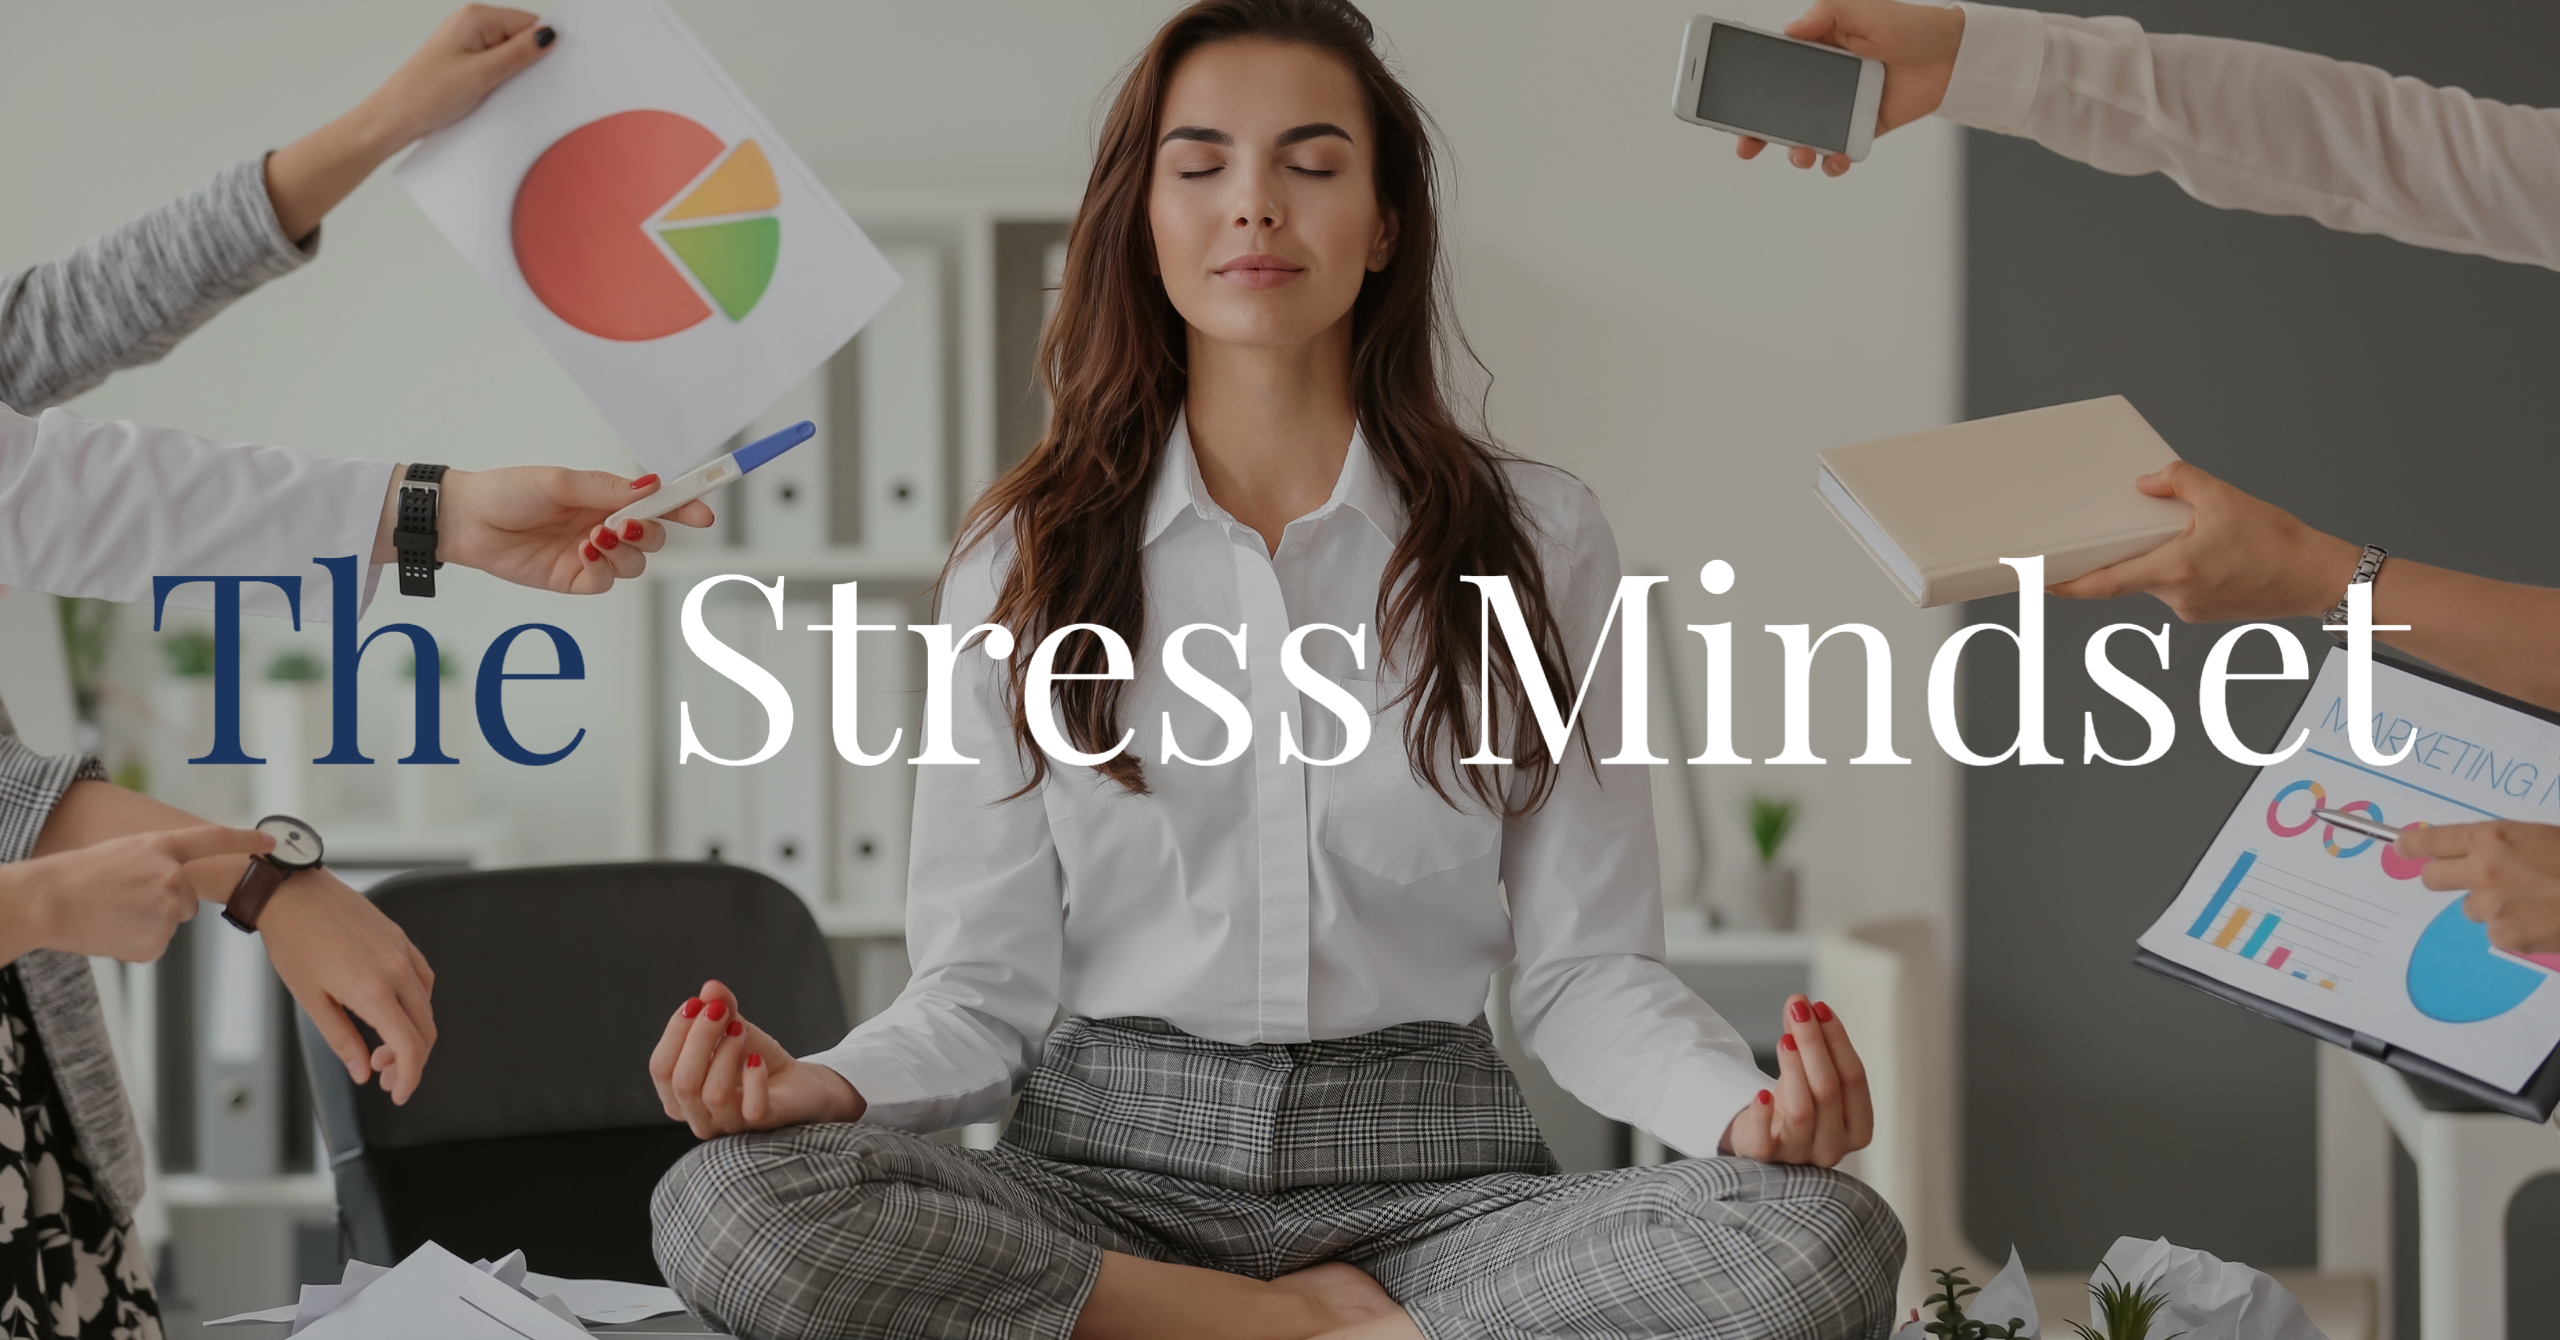 The Stress Mindset: Change how you engage with stress